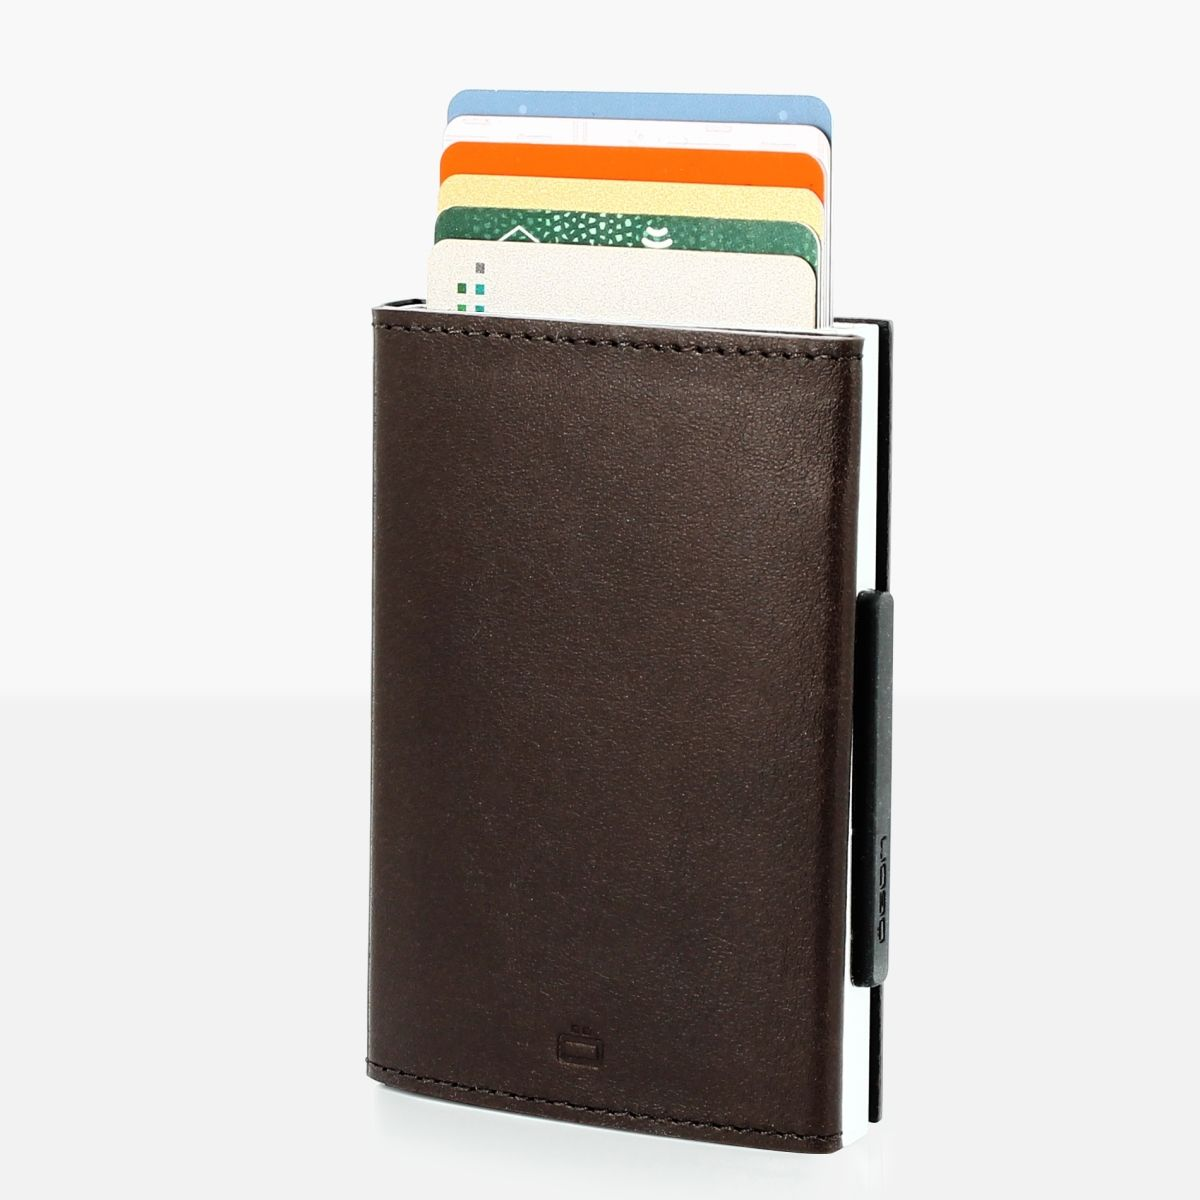 OGON Card Case Wallet - Brown